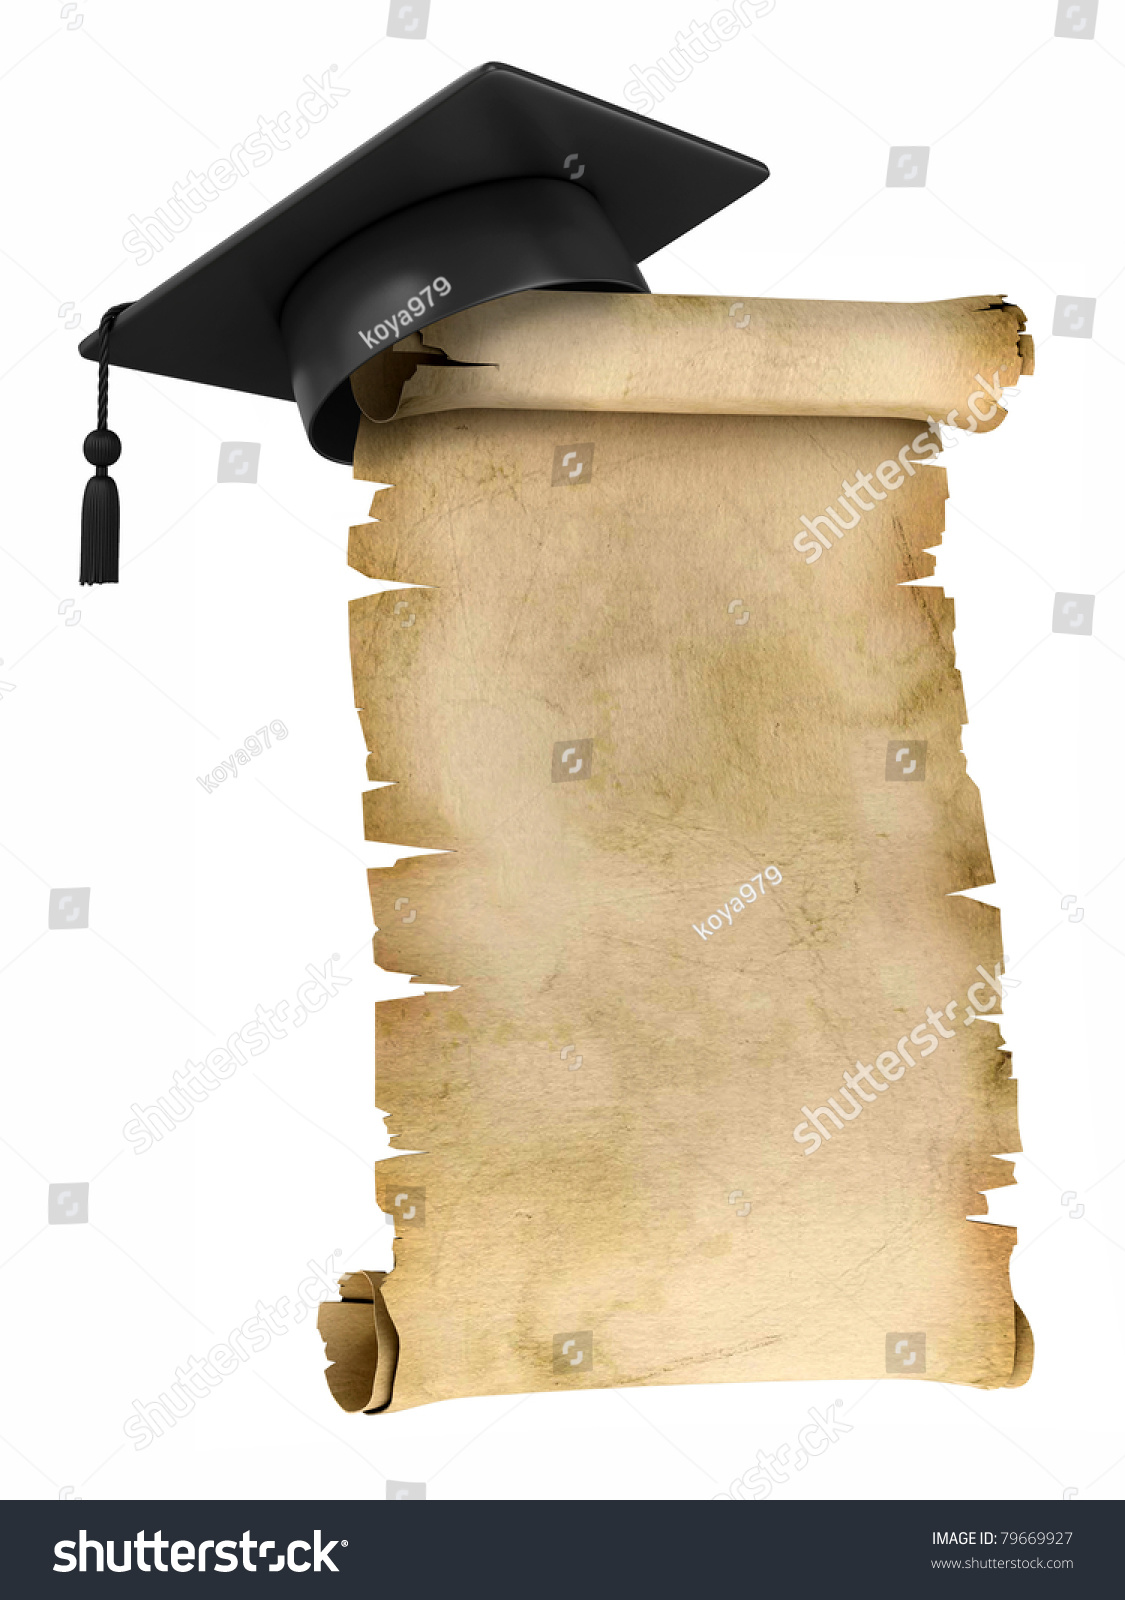 graduation cap on top old parchment stock illustration